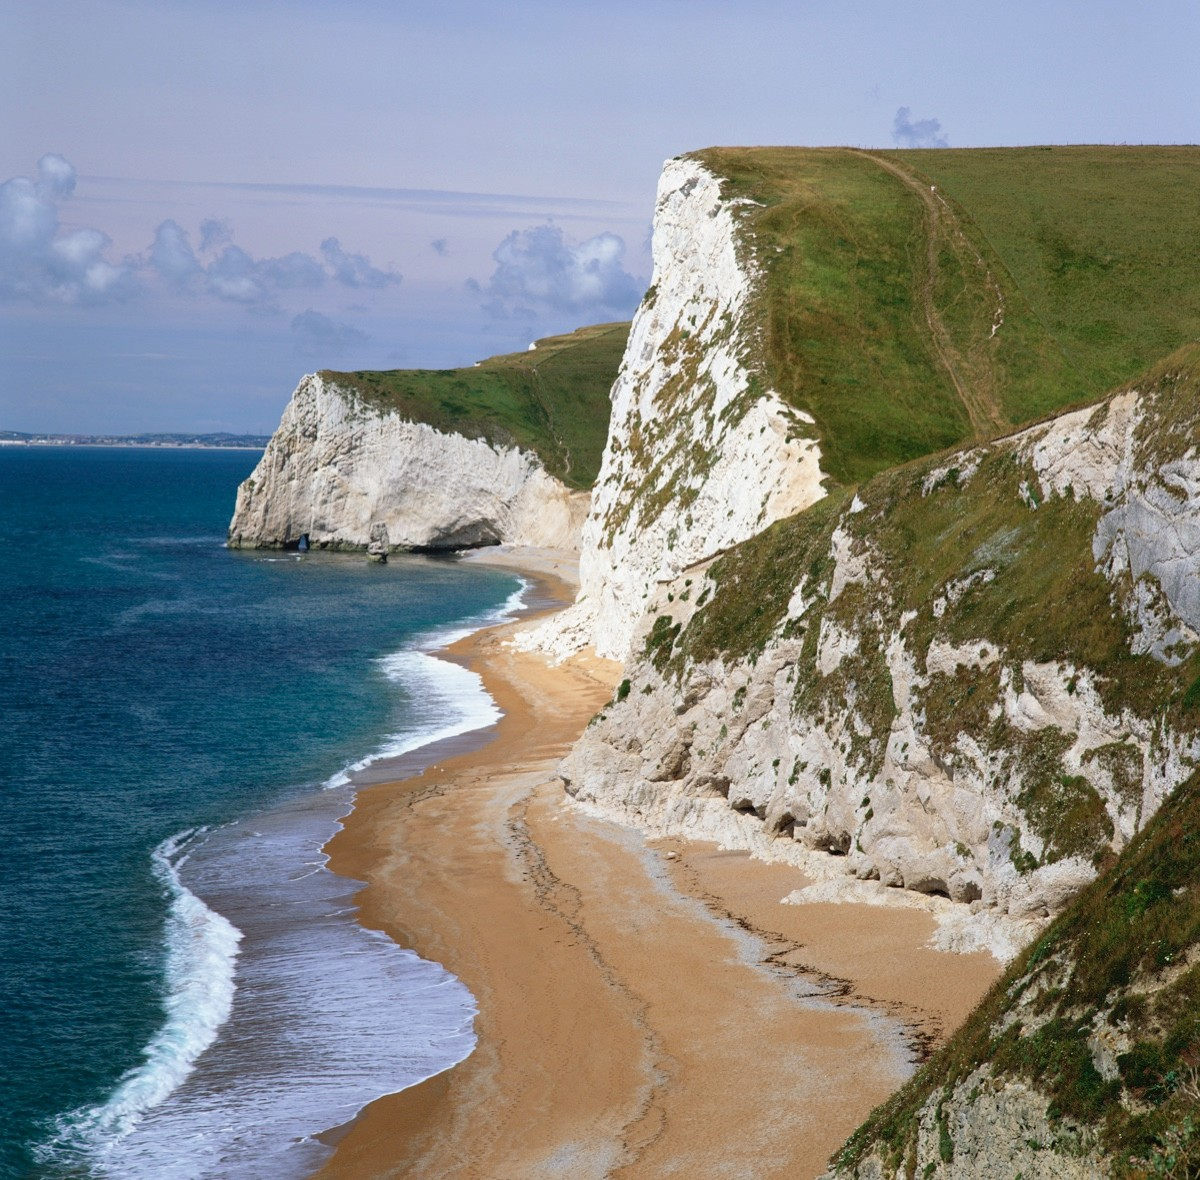 Cliffs on seashore, England